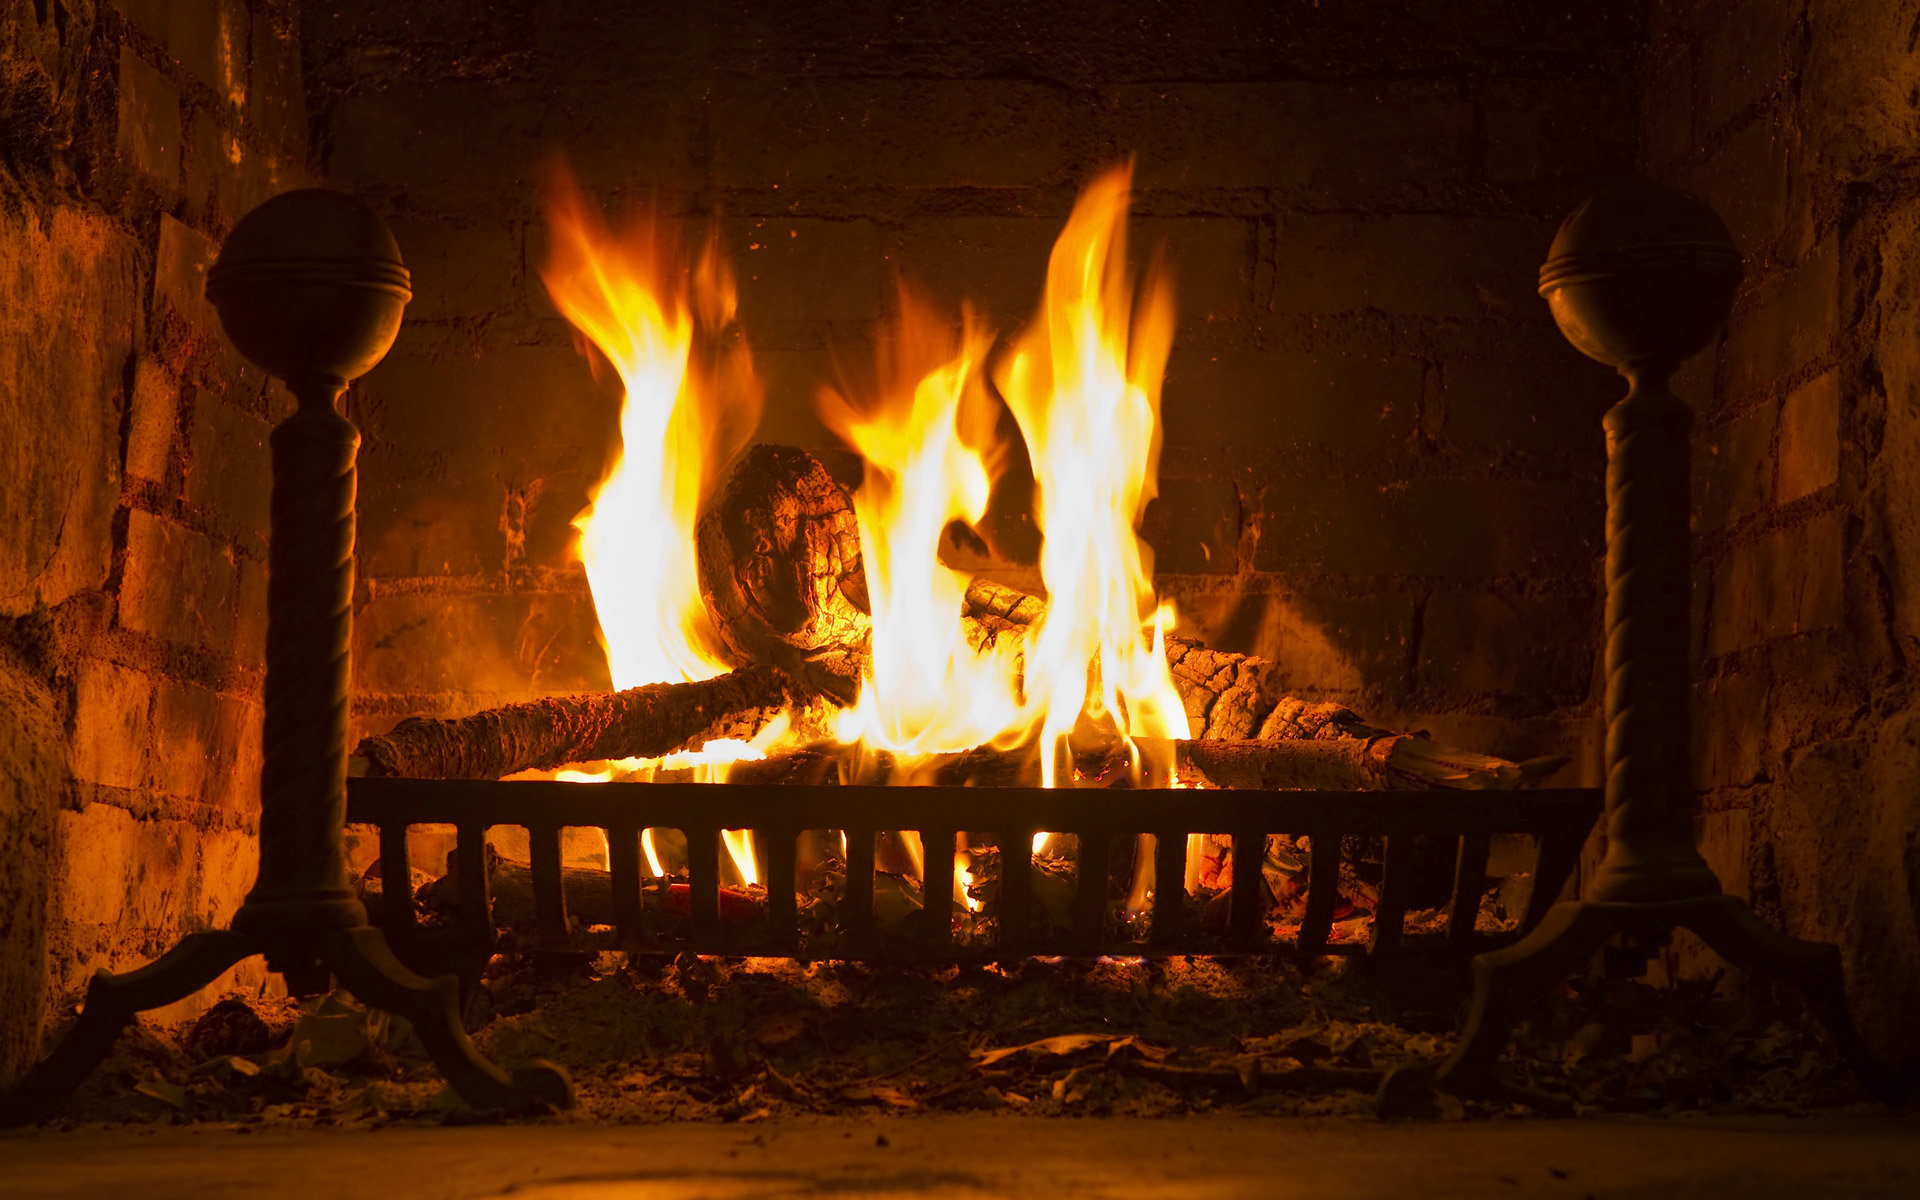 Fireplace Wallpapers Hd For Desktop Backgrounds